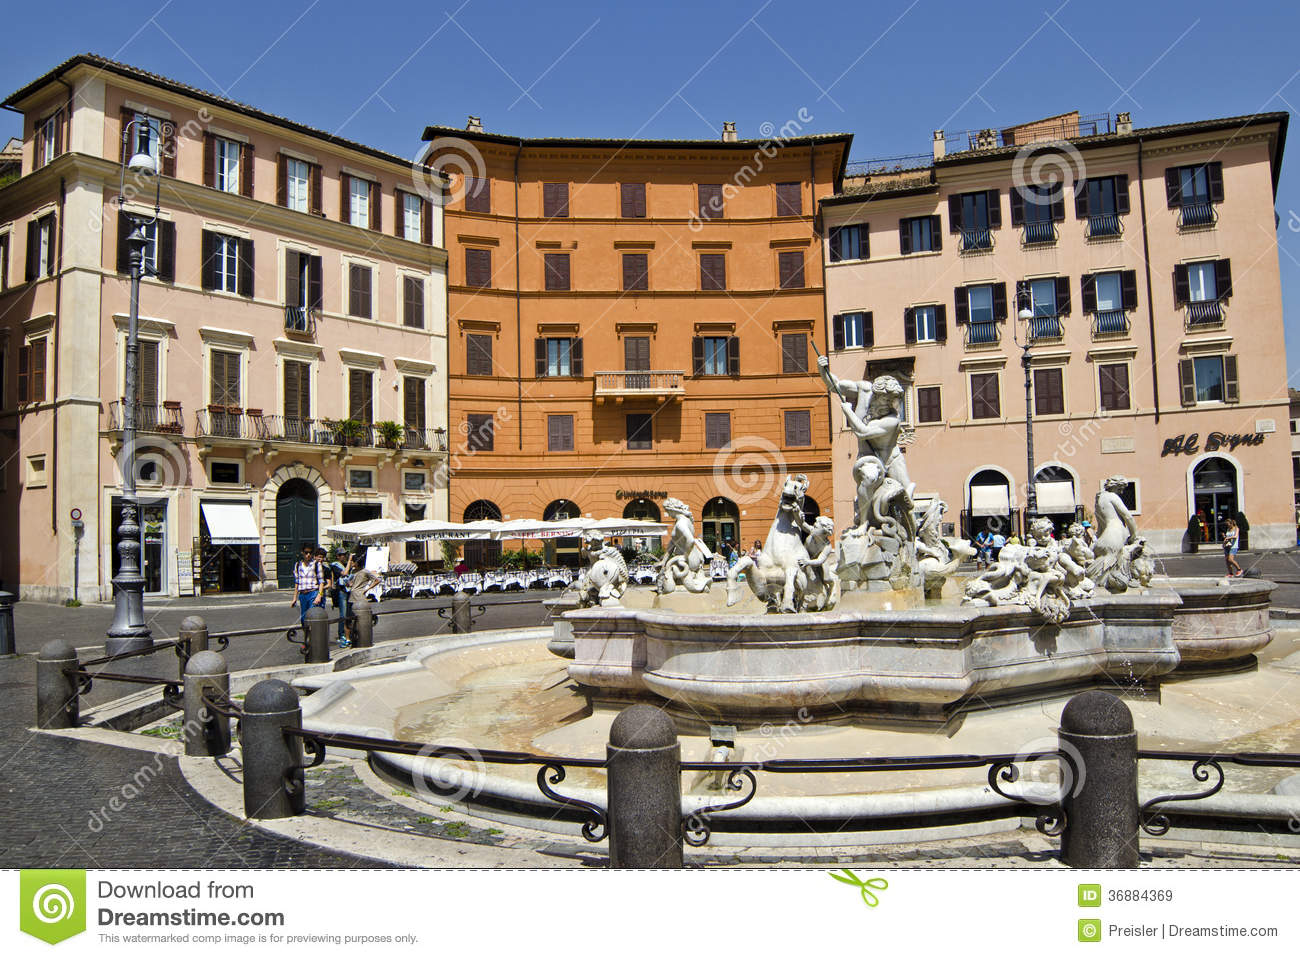 Download Fontana di Nettuno - Roma immagine stock editoriale. Immagine di colori - 36884369